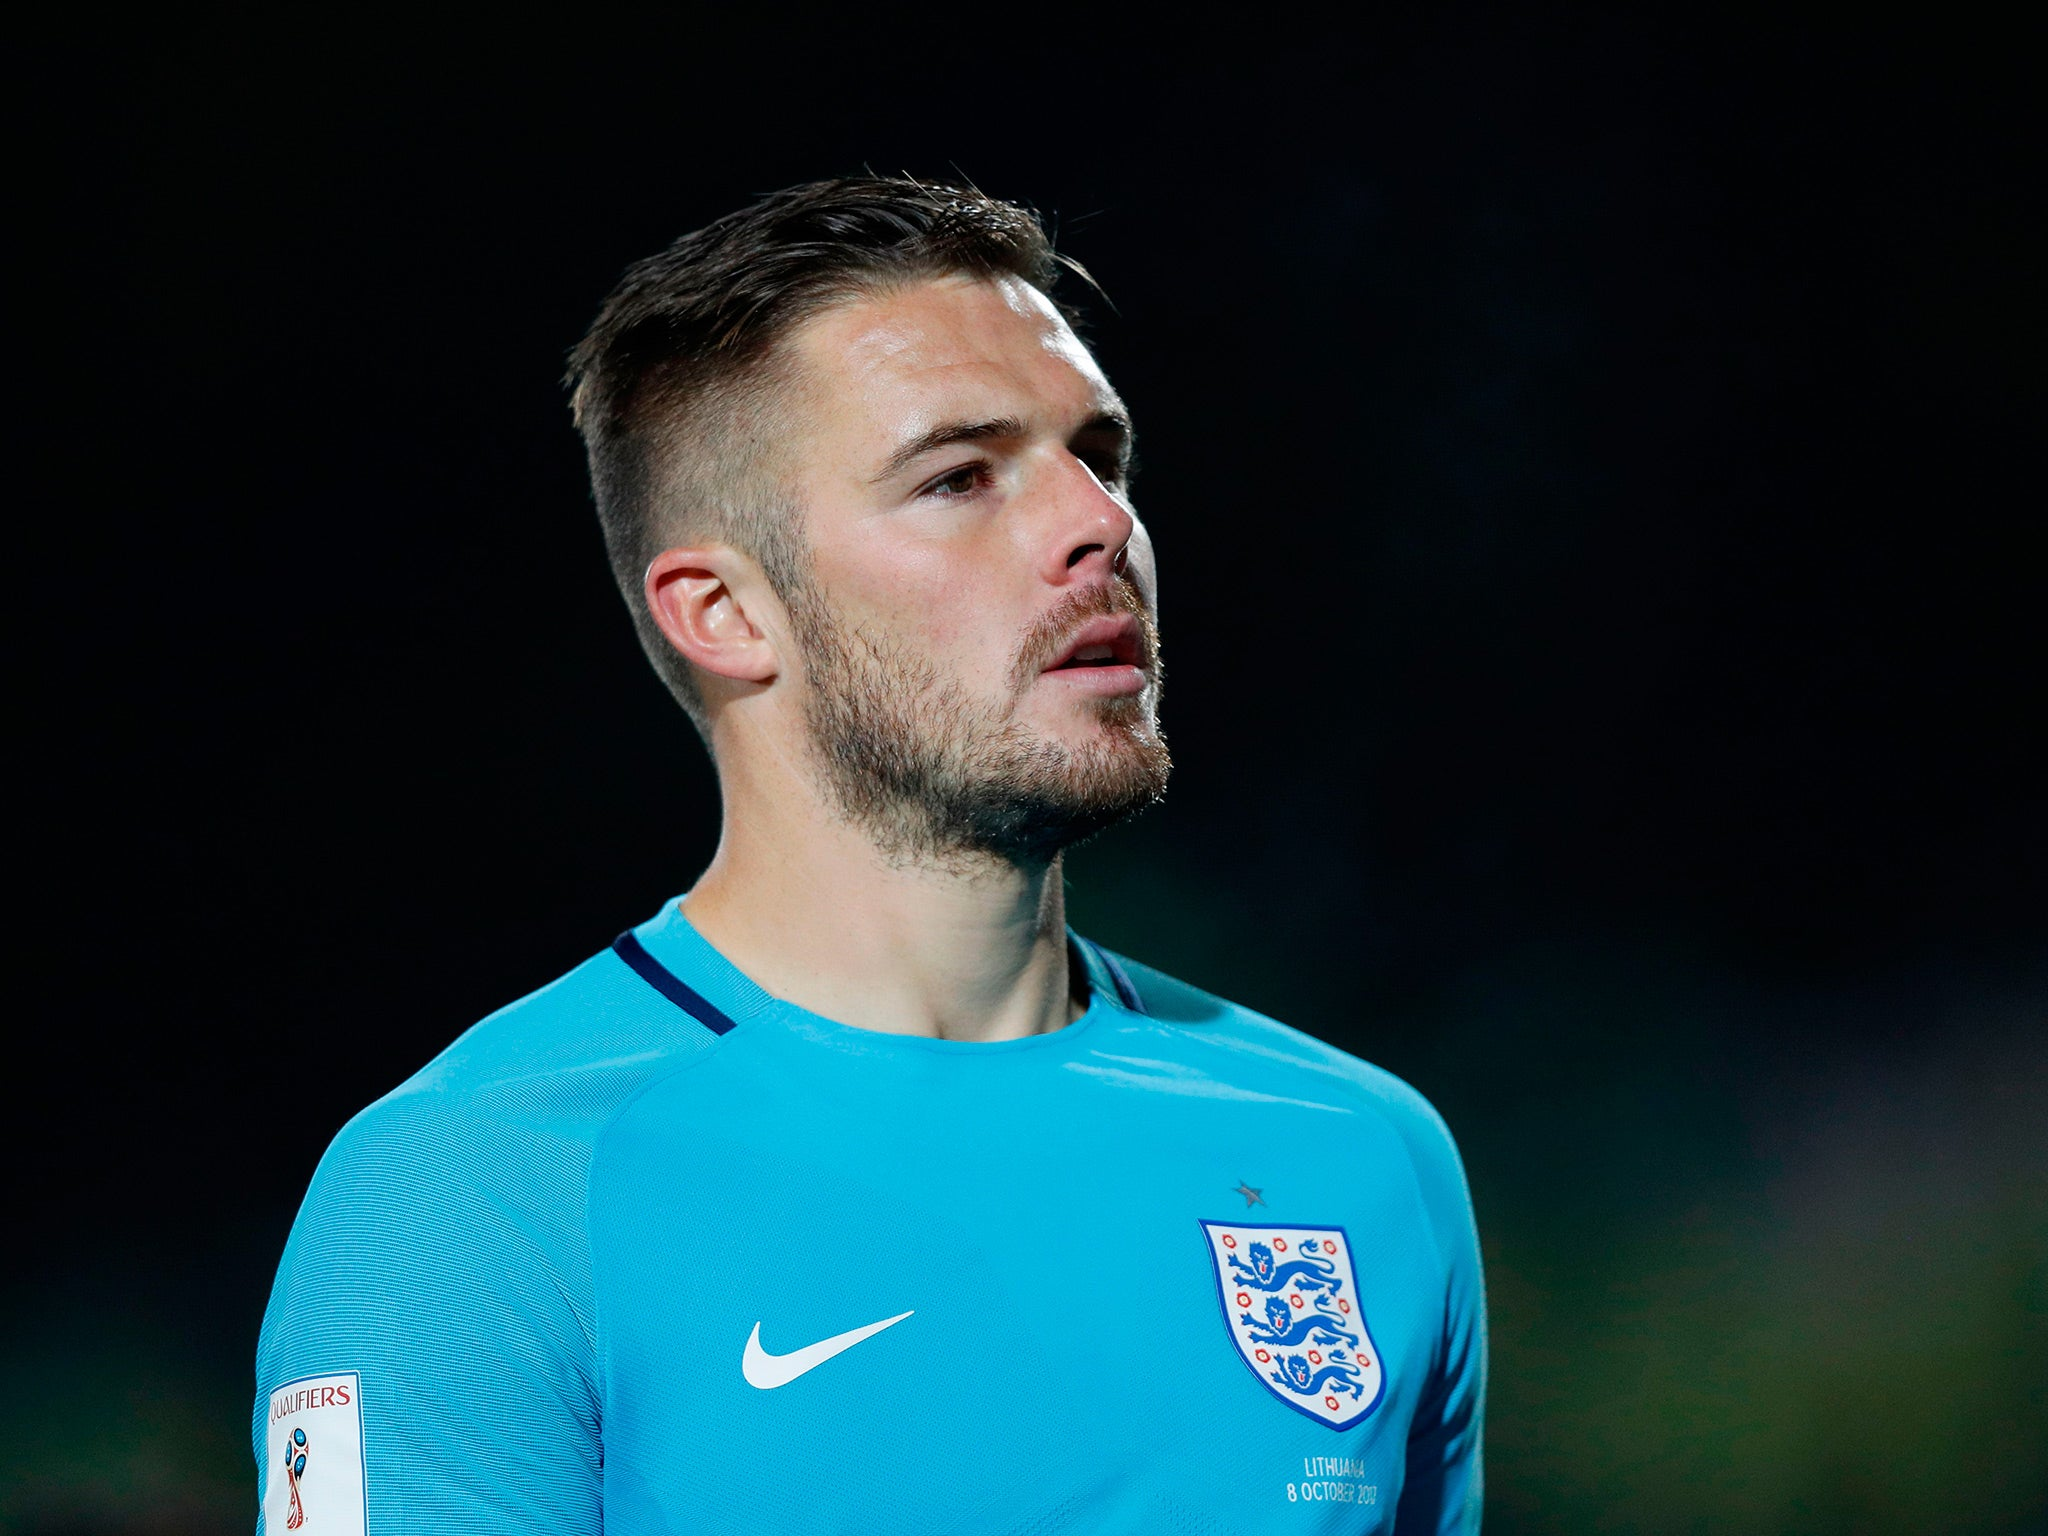 England goalkeeper Jack Butland withdraws from squad to face Germany with broken finger